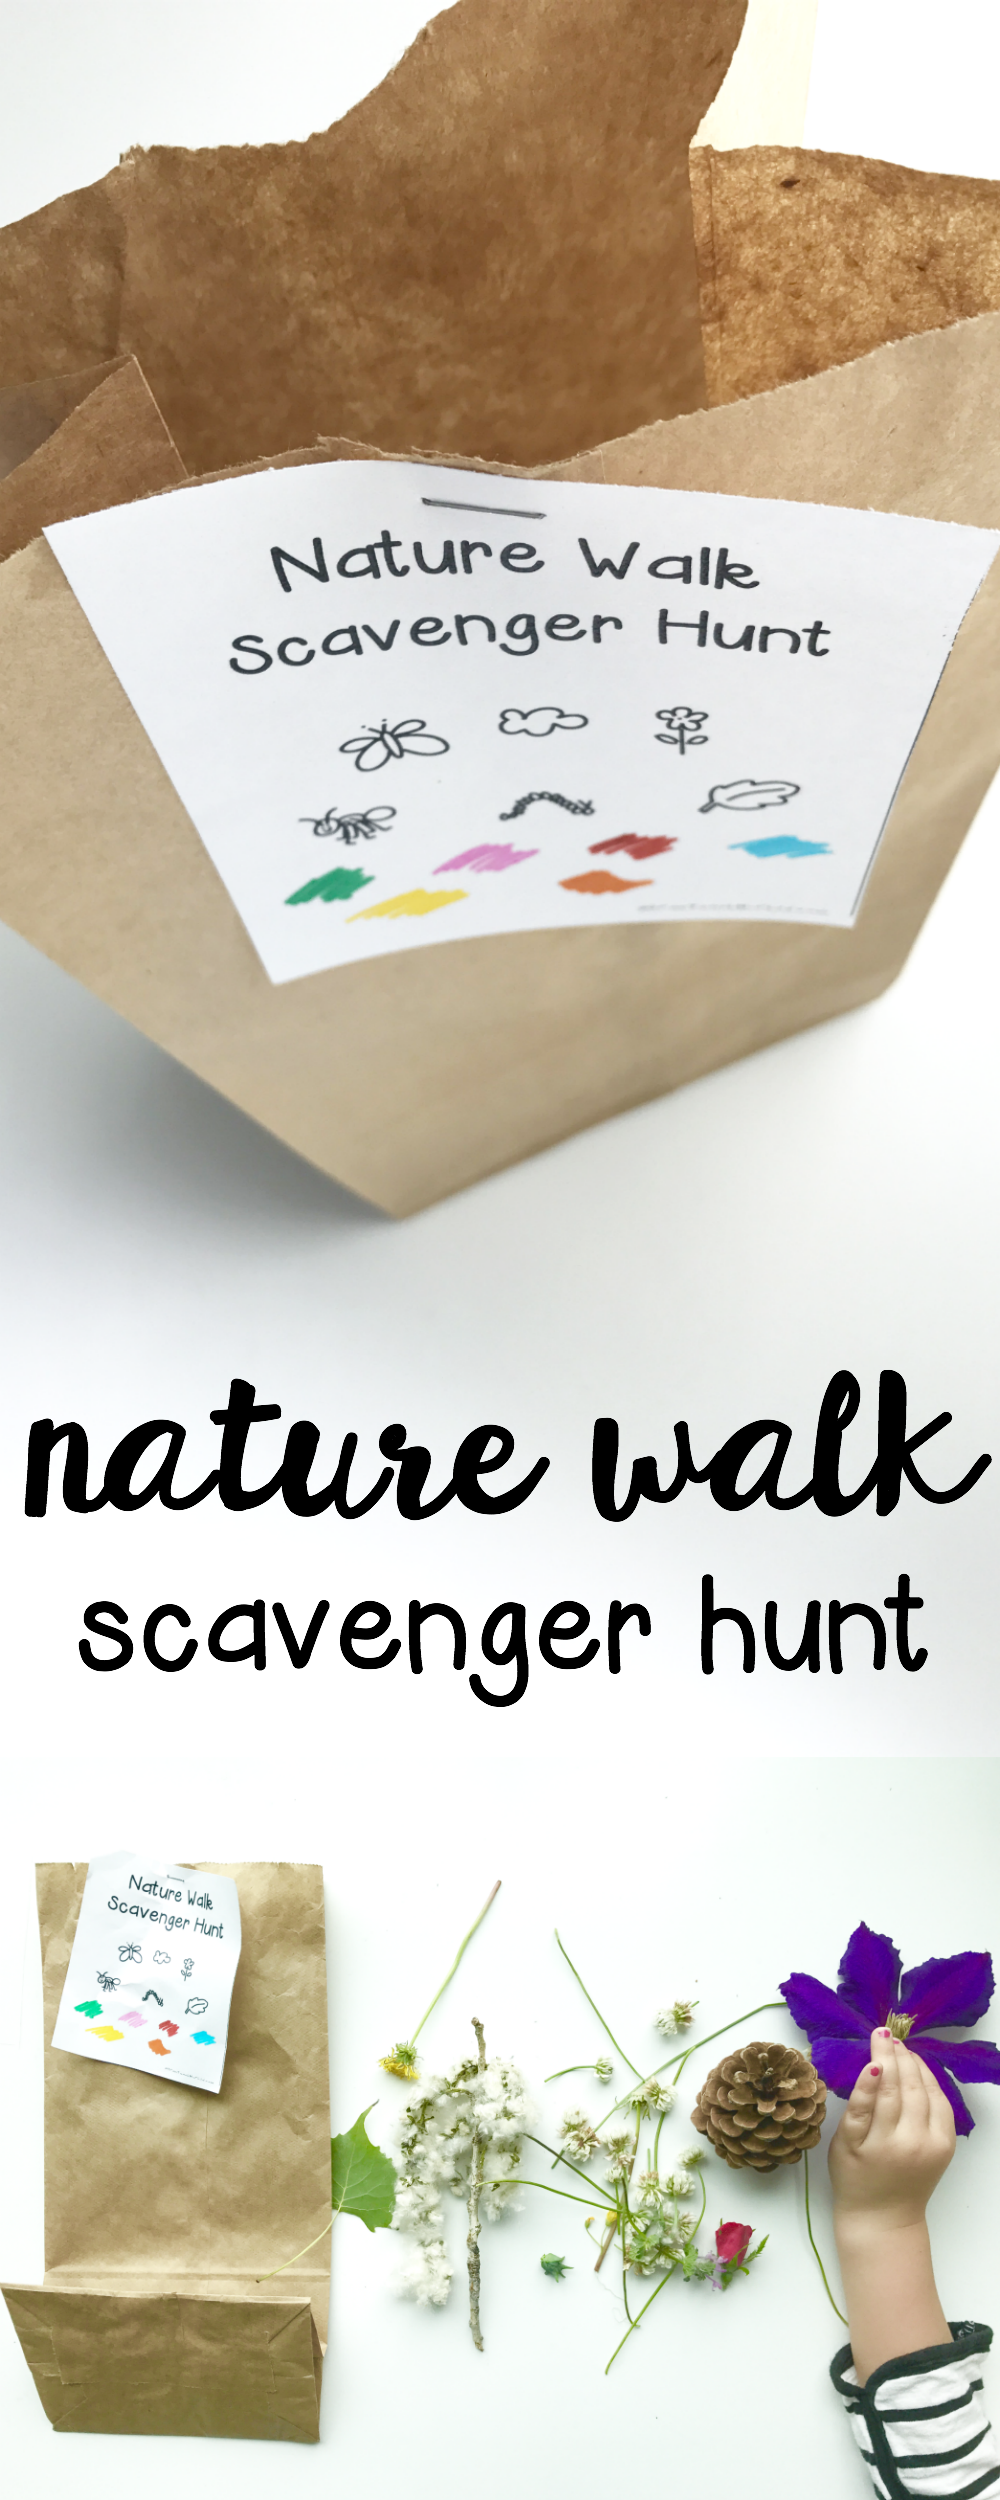 nature walk scavenger hunt such a fun outdoor activity for toddlers and preschoolers. Black Bedroom Furniture Sets. Home Design Ideas